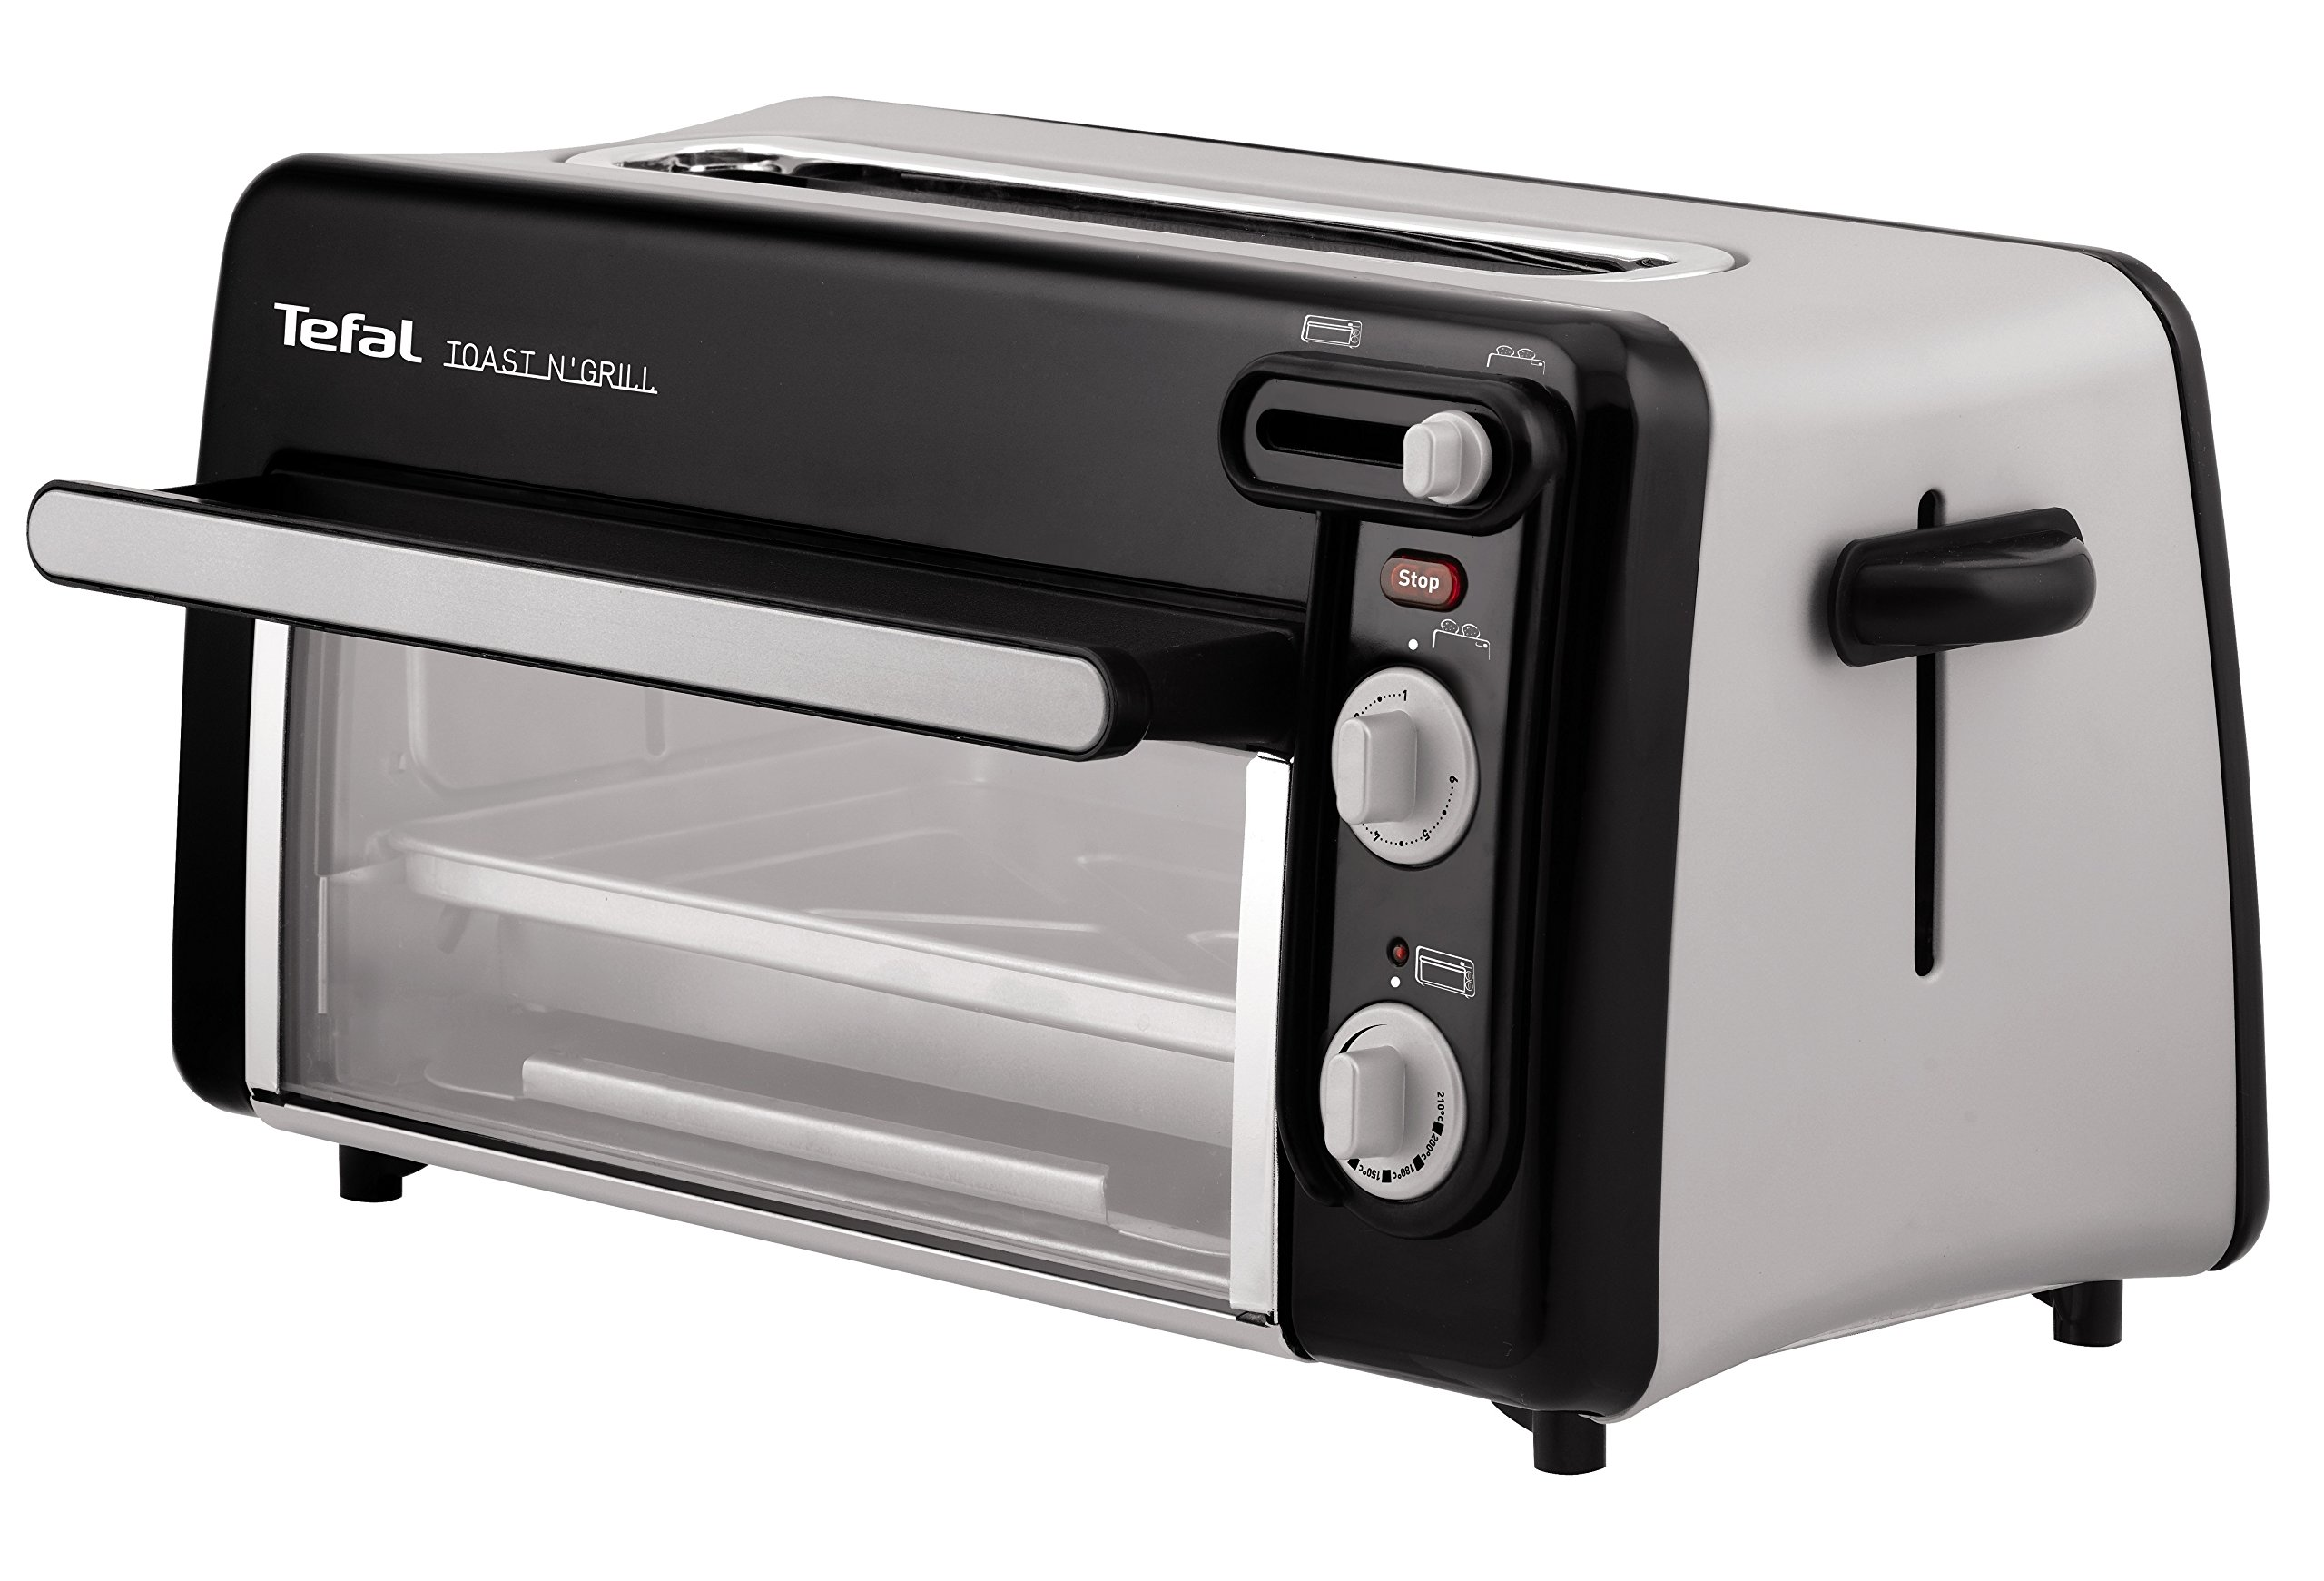 Tefal TL600830 Grille Pain Toast And Grill product image